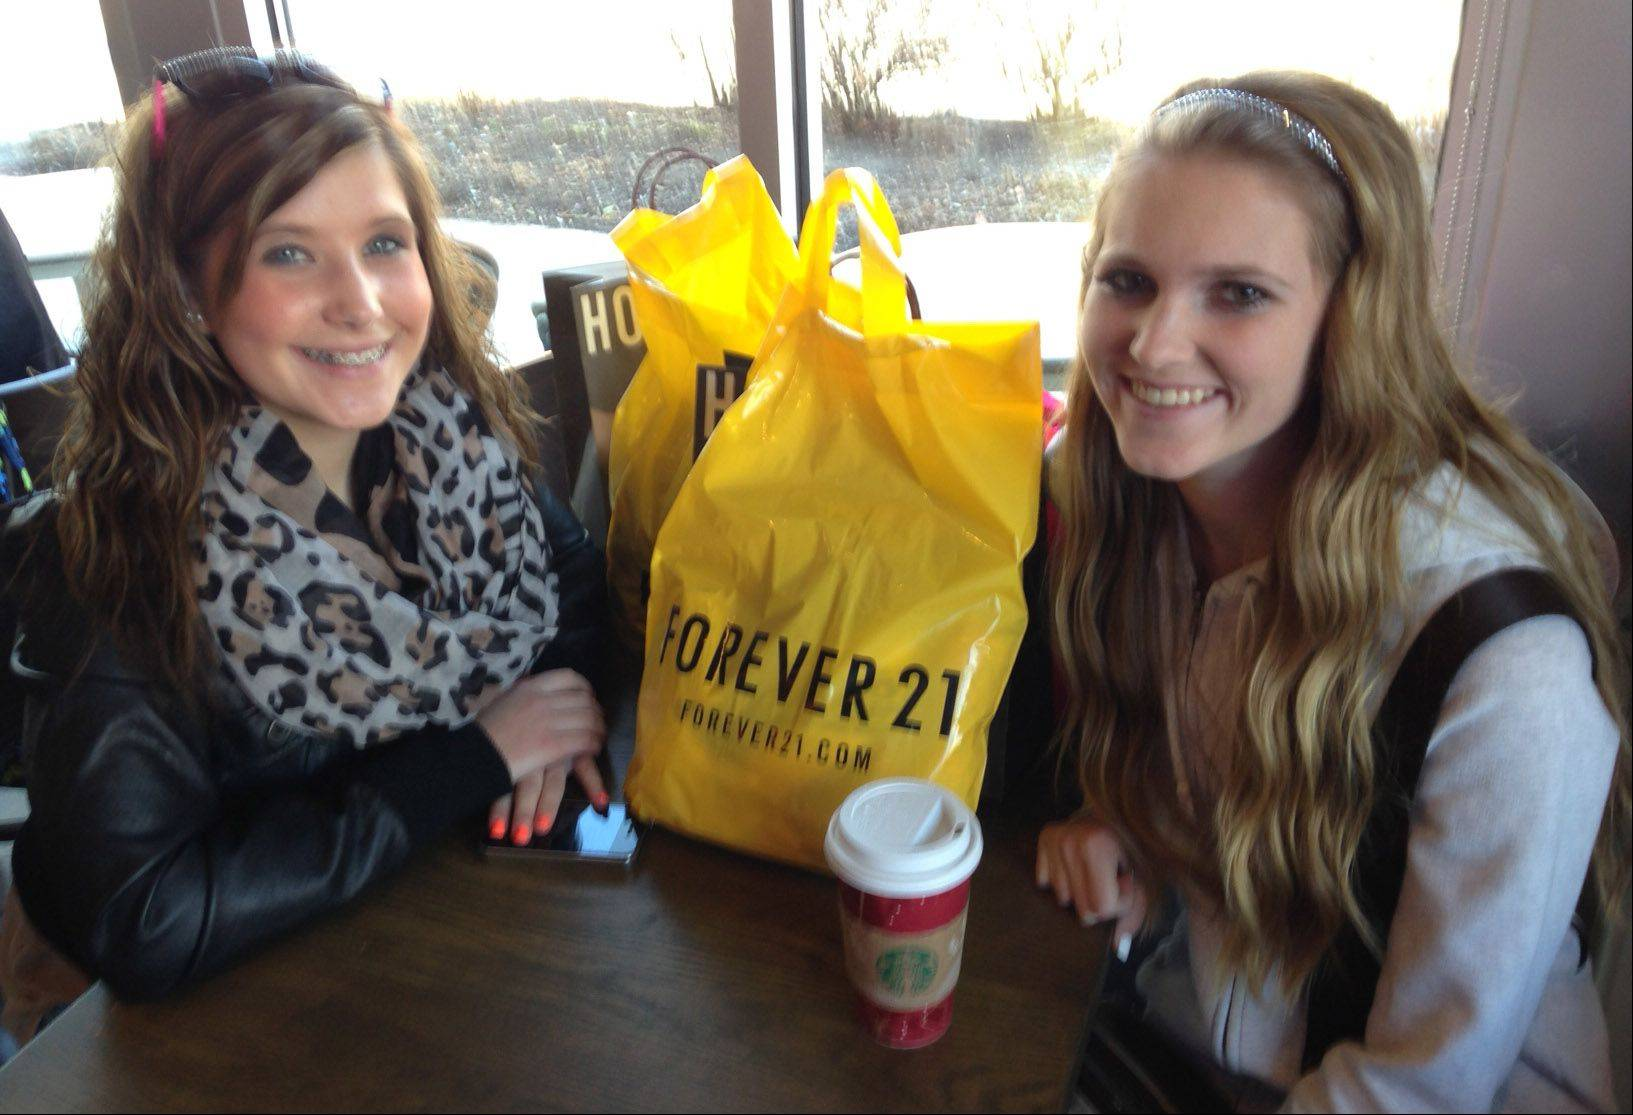 Lexi Friedewald of Bartlett and Kassie Kramer of South Elgin take a break for hot chocolate while shopping Friday morning at Geneva Commons in Geneva. Besides presents for relatives and boyfriends, they picked up a few things for themselves.